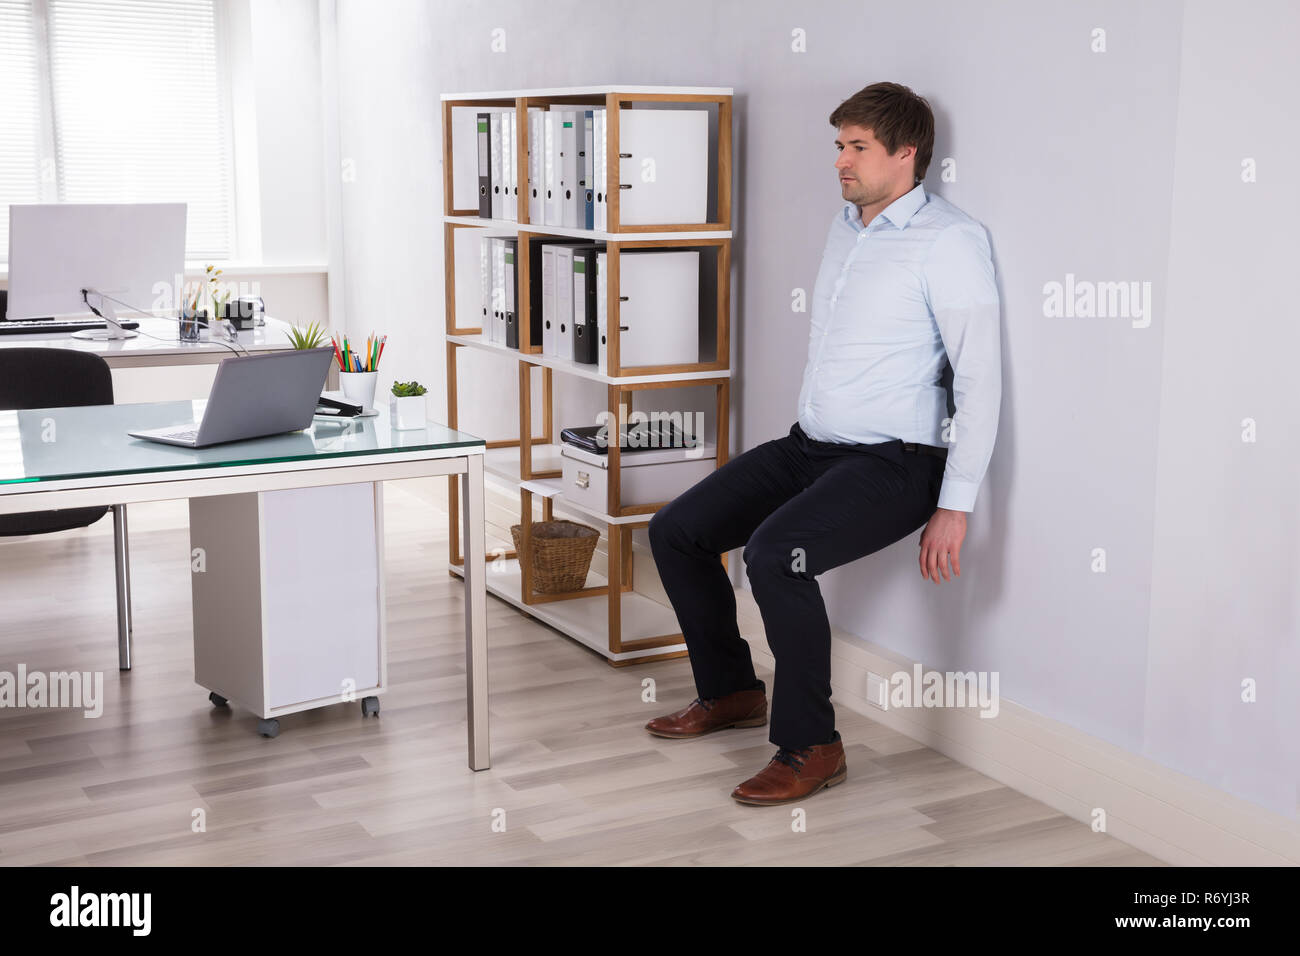 Businessman Leaning On Wall Doing Workout - Stock Image